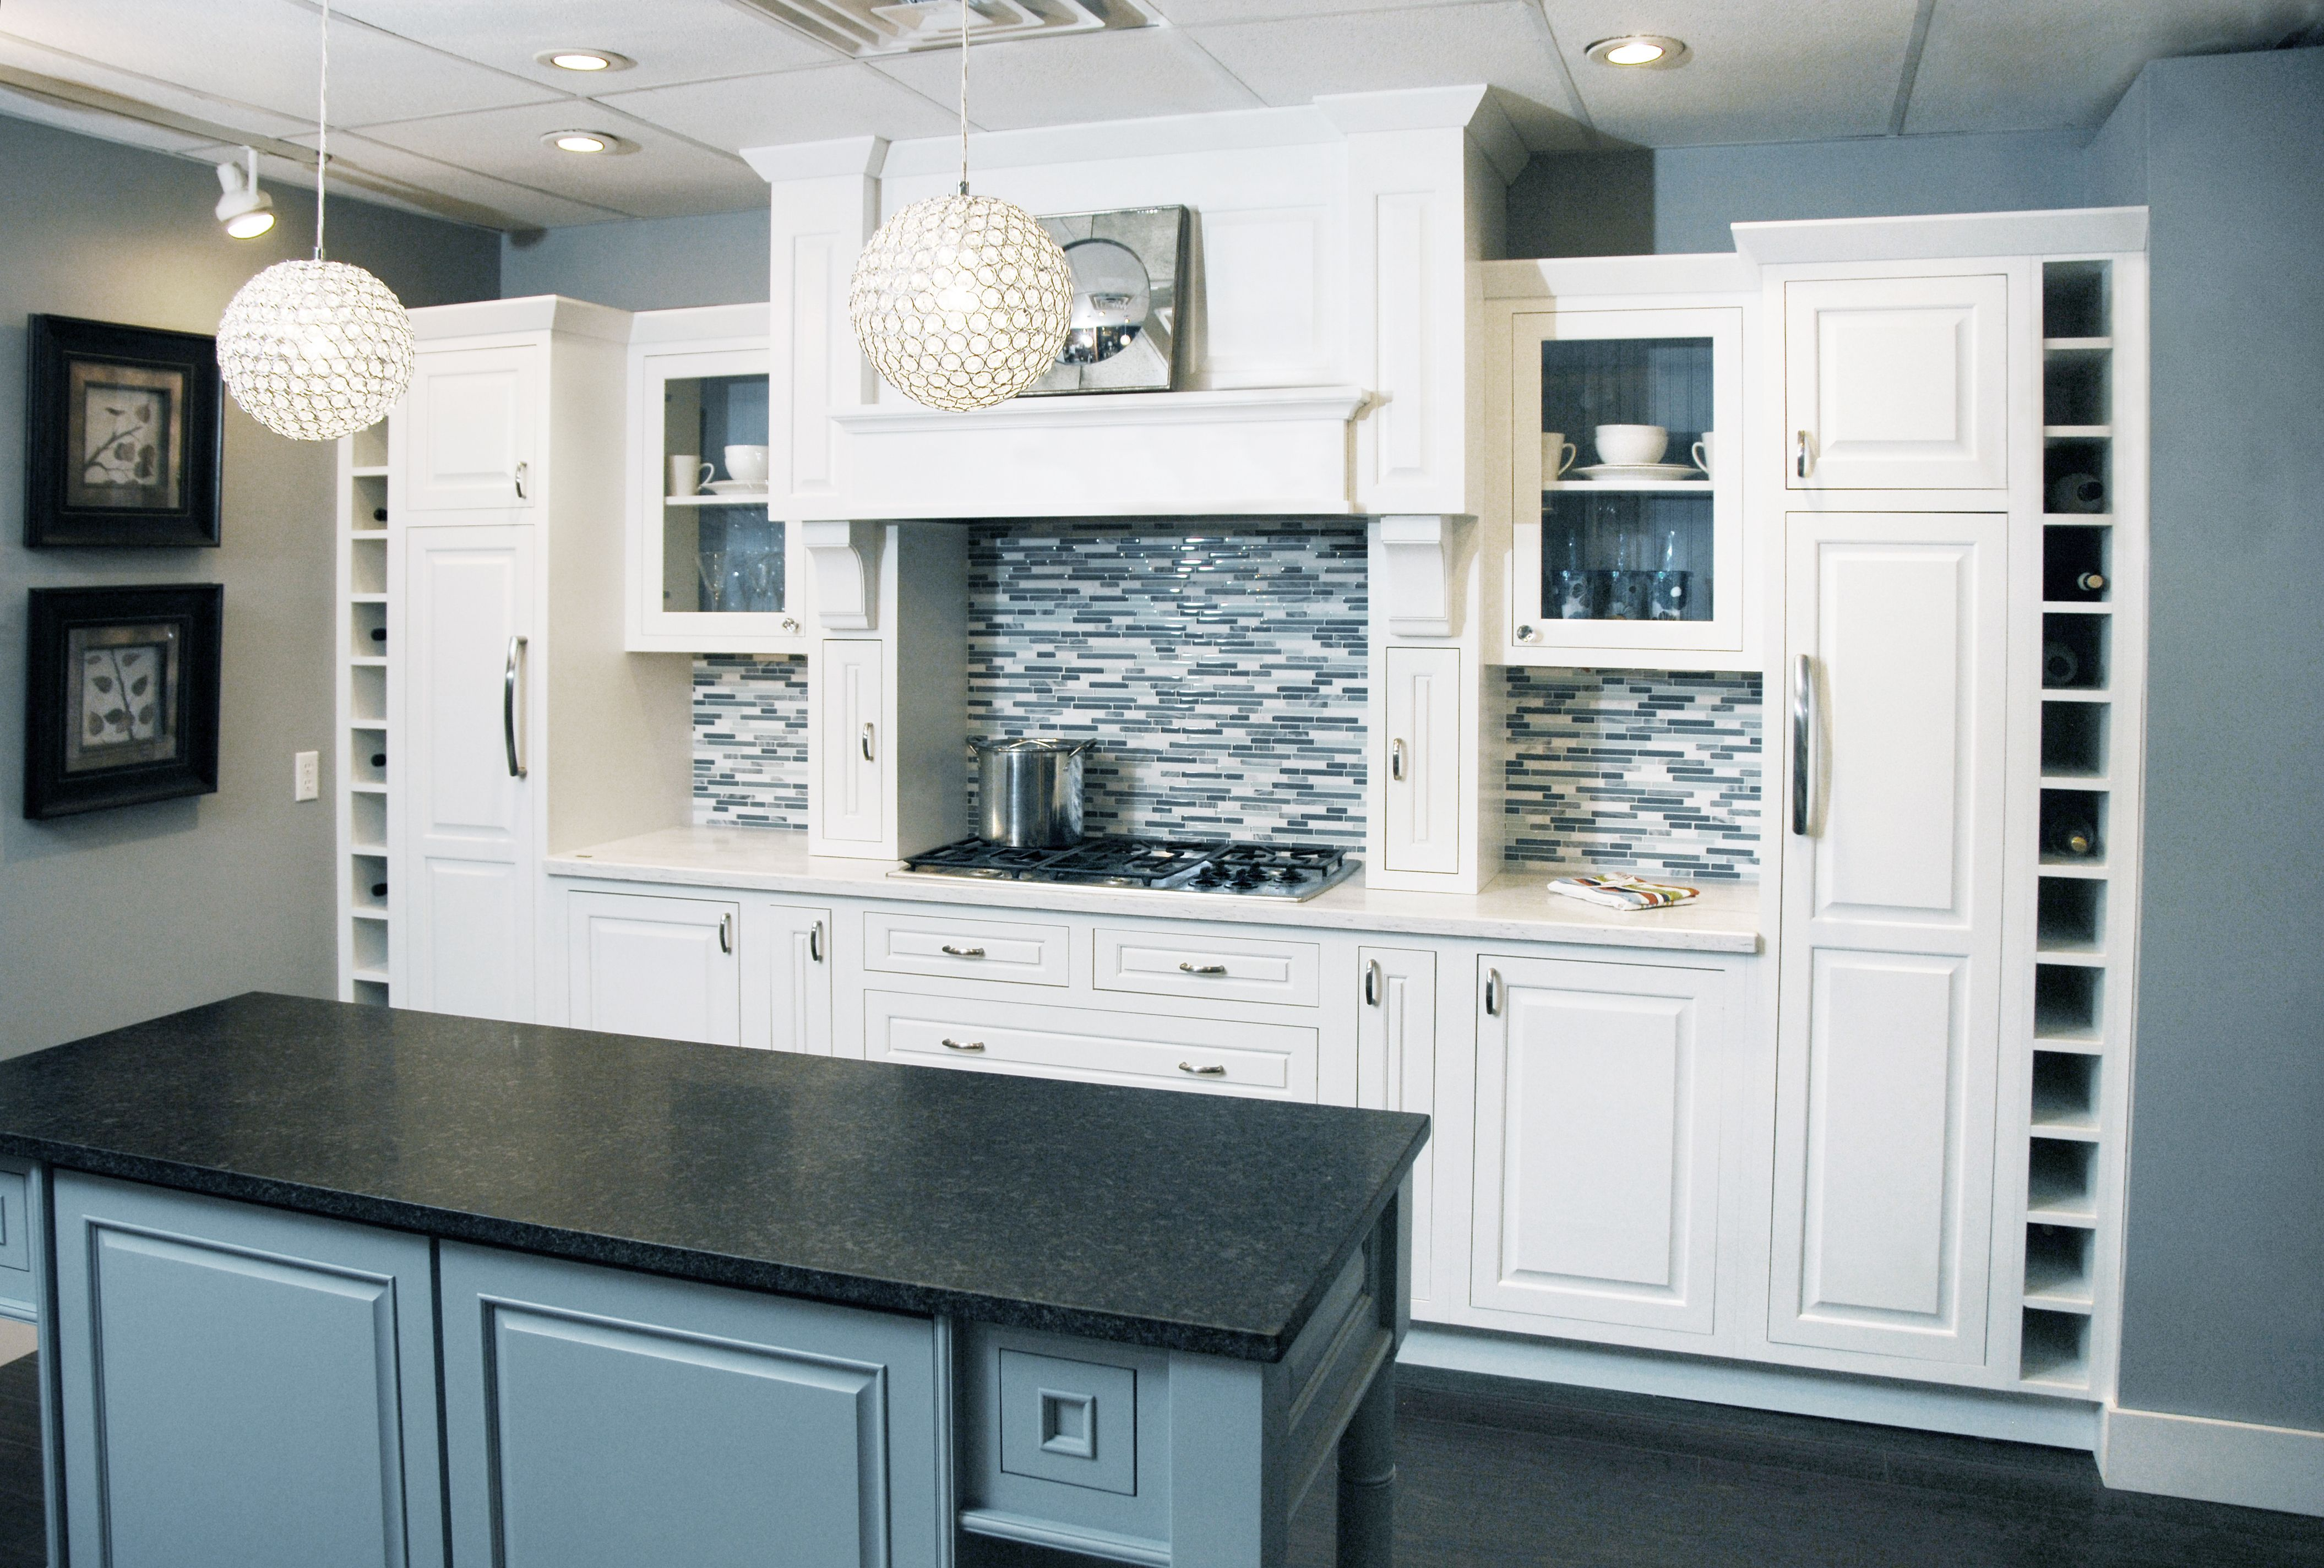 Dura Supreme Cabinetry Transitional Cottage Kitchen by Standale ...